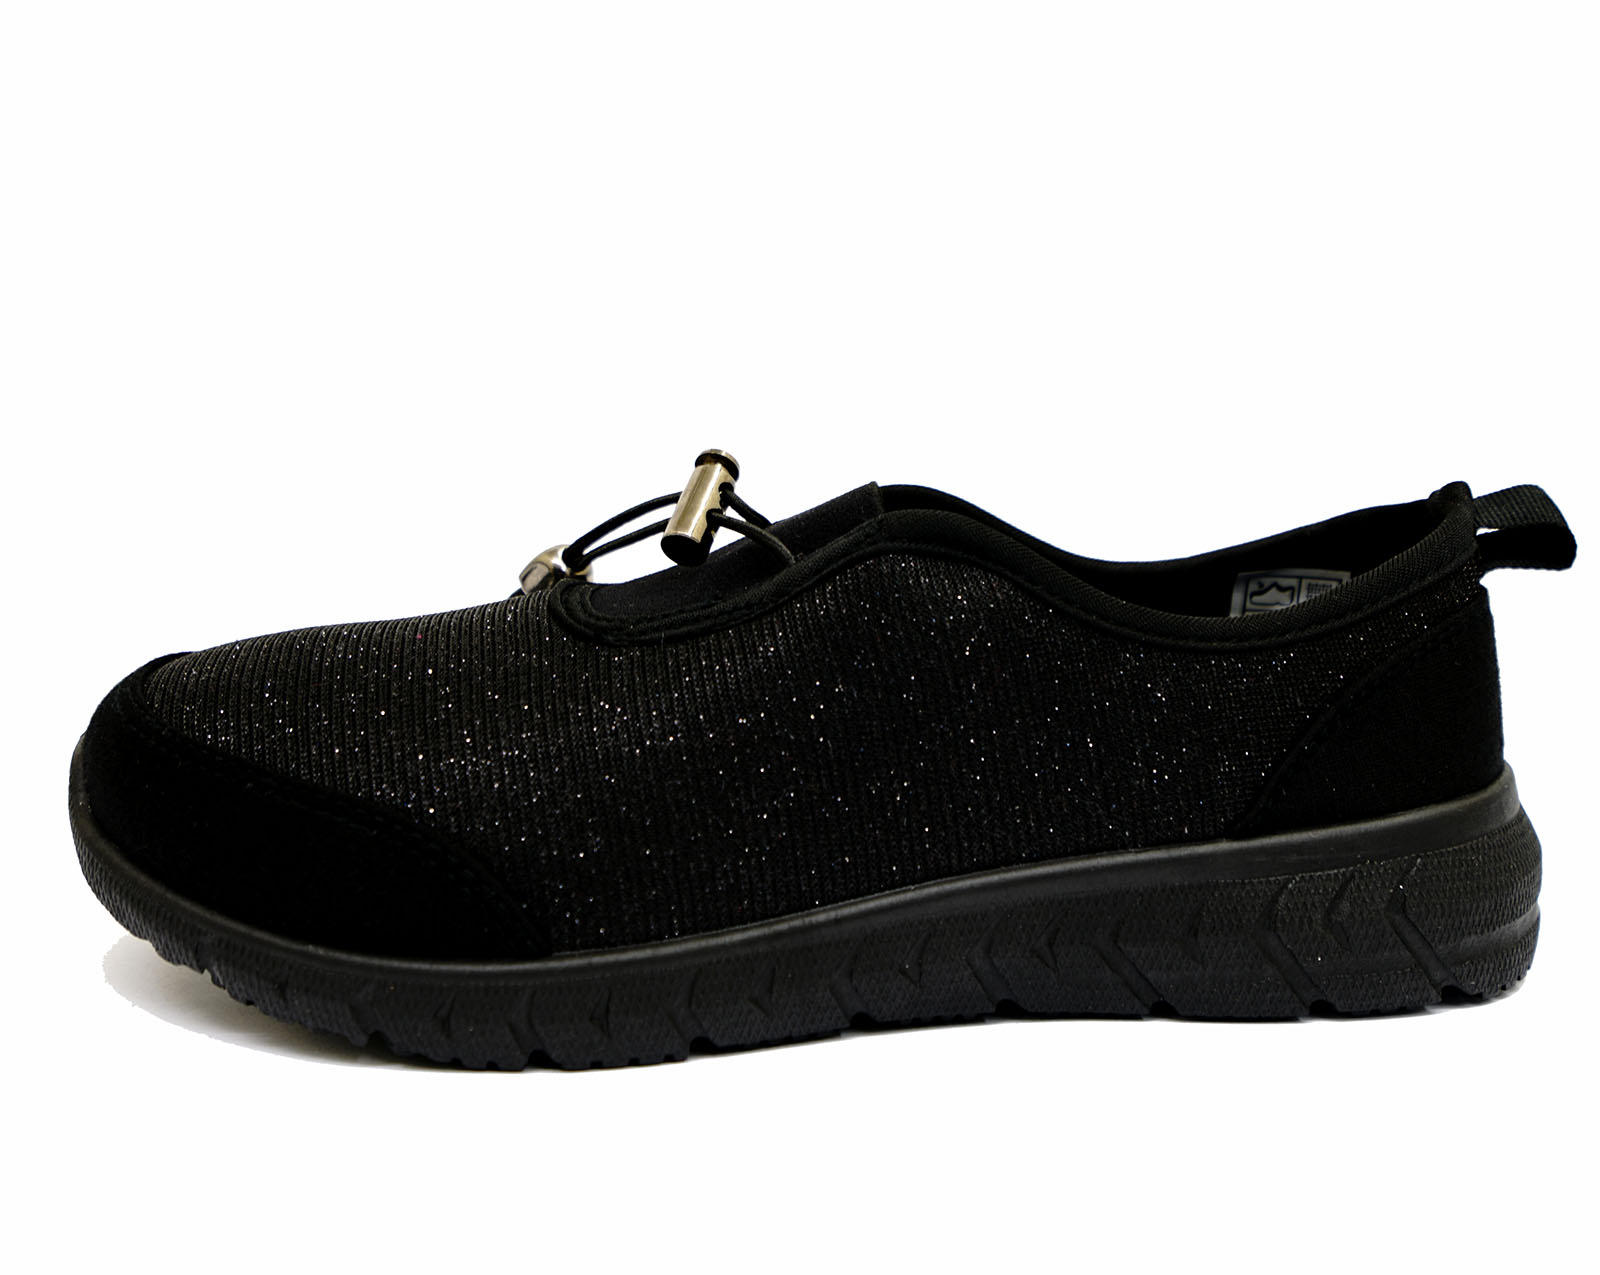 thumbnail 9 - LADIES-BLACK-SLIP-ON-COMFORT-MEMORY-FOAM-TRAINER-PLIMSOLL-CASUAL-PUMPS-SHOES-3-9